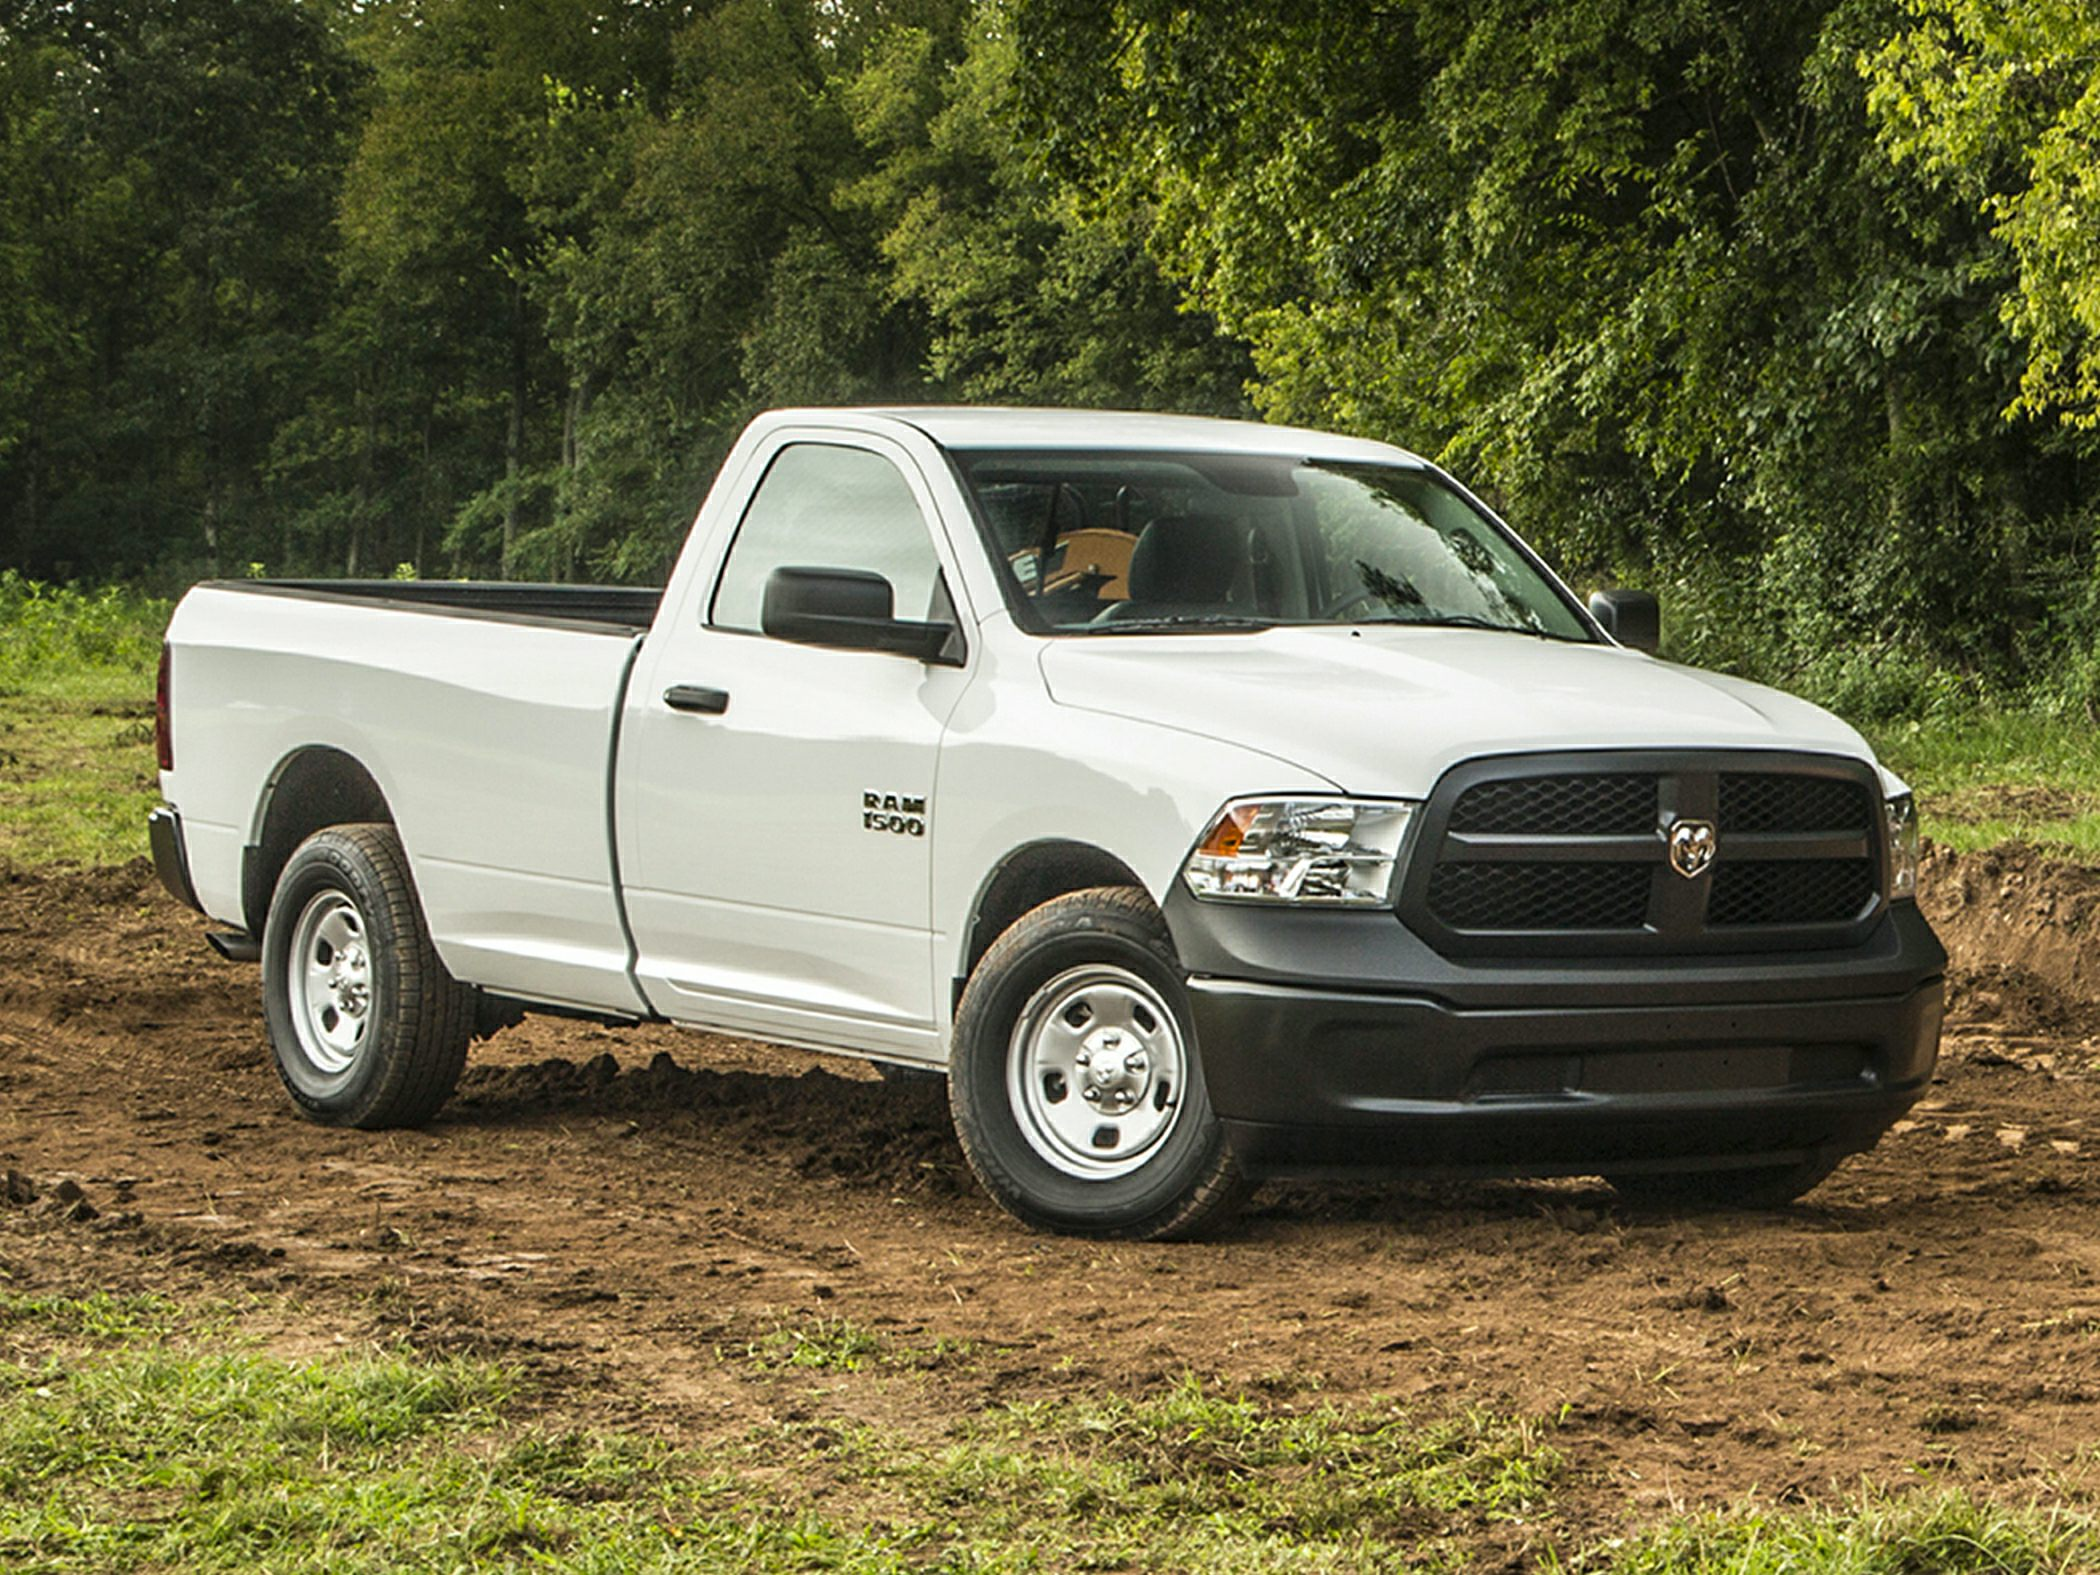 2014 Ram 1500 Tradesman Paris Texas Hodge Dodge Reviews Specials Back Up Camera Wiring Diagram